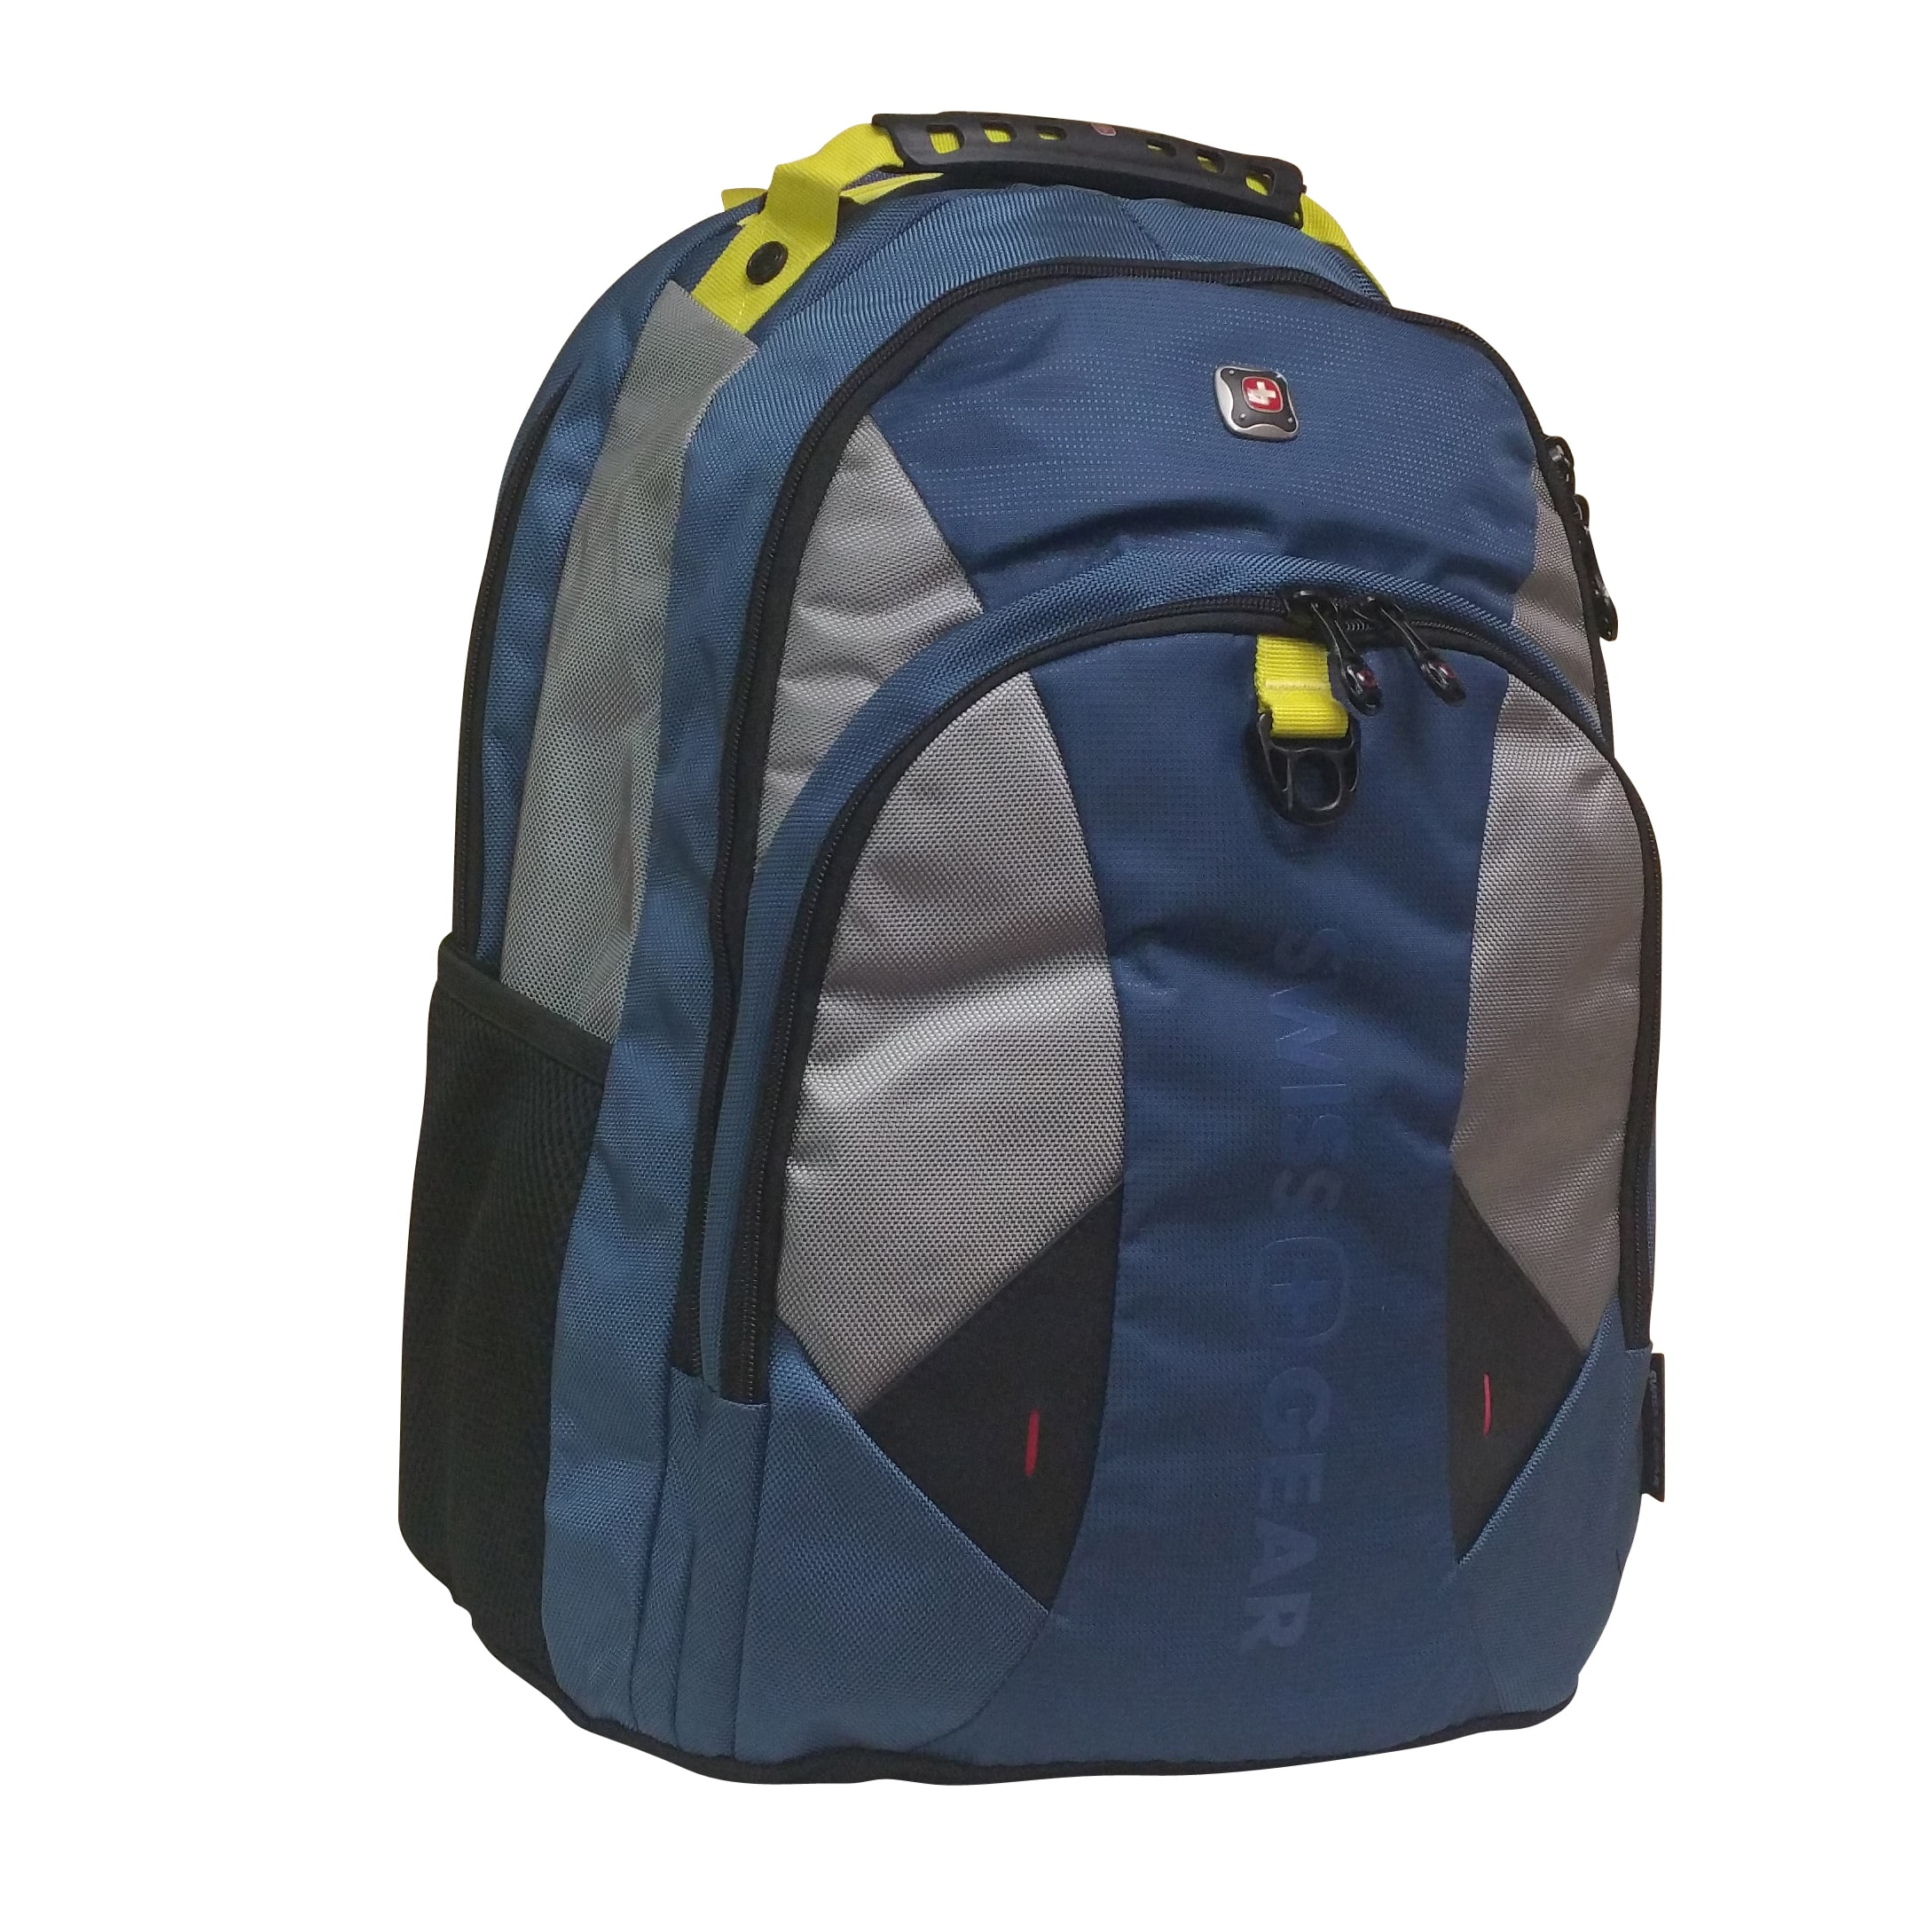 SwissGear Swiss Gear Pulsar Blue 16-inch Laptop Backpack